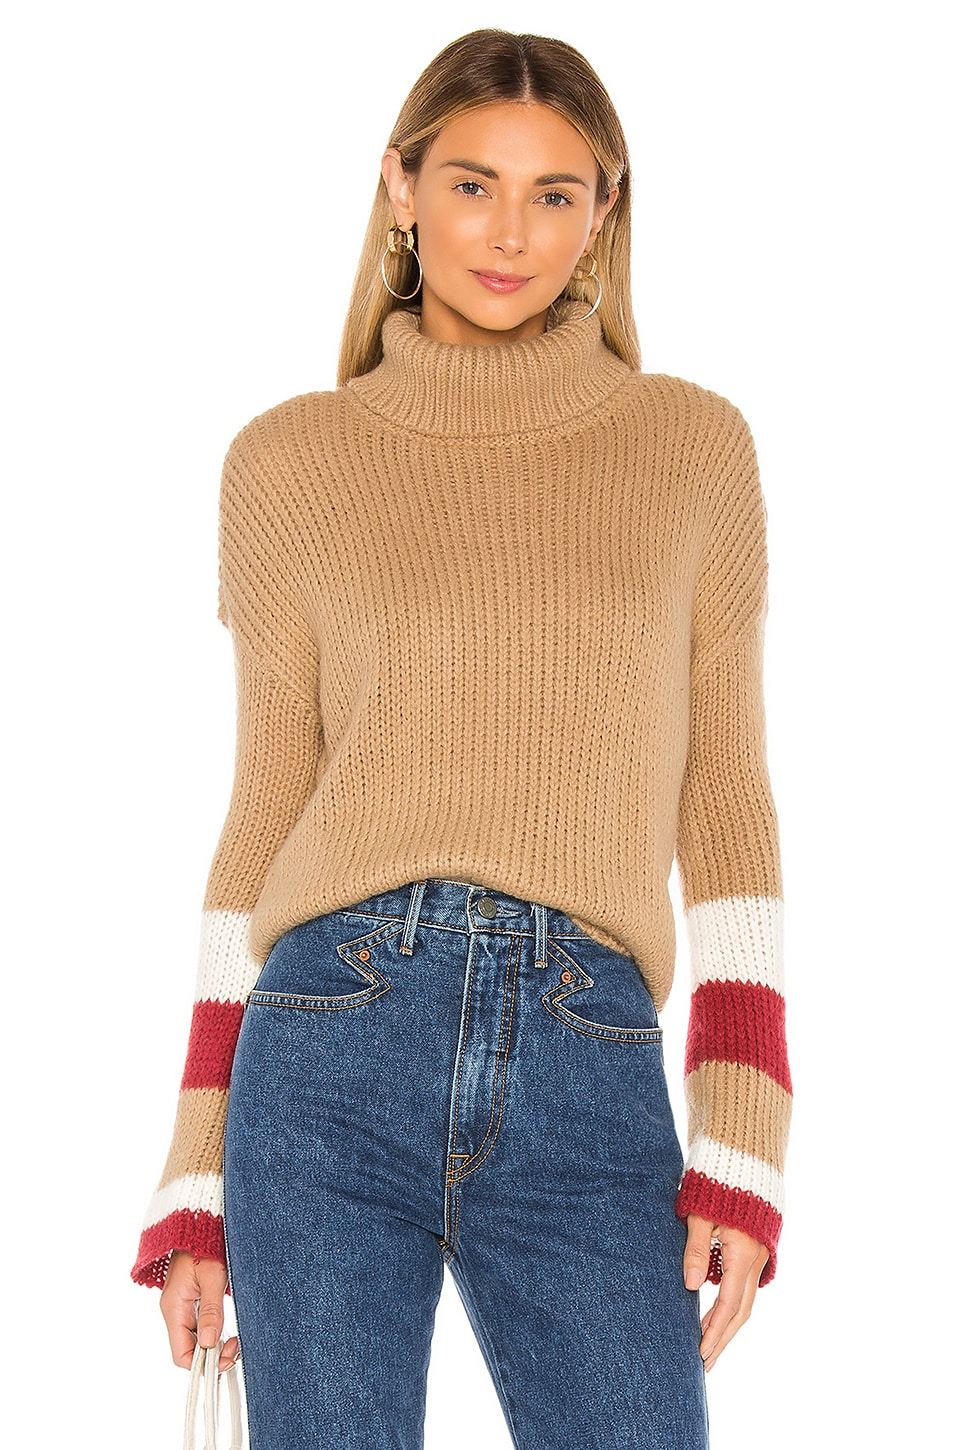 Lovers + Friends Cisco Sweater in Toffee